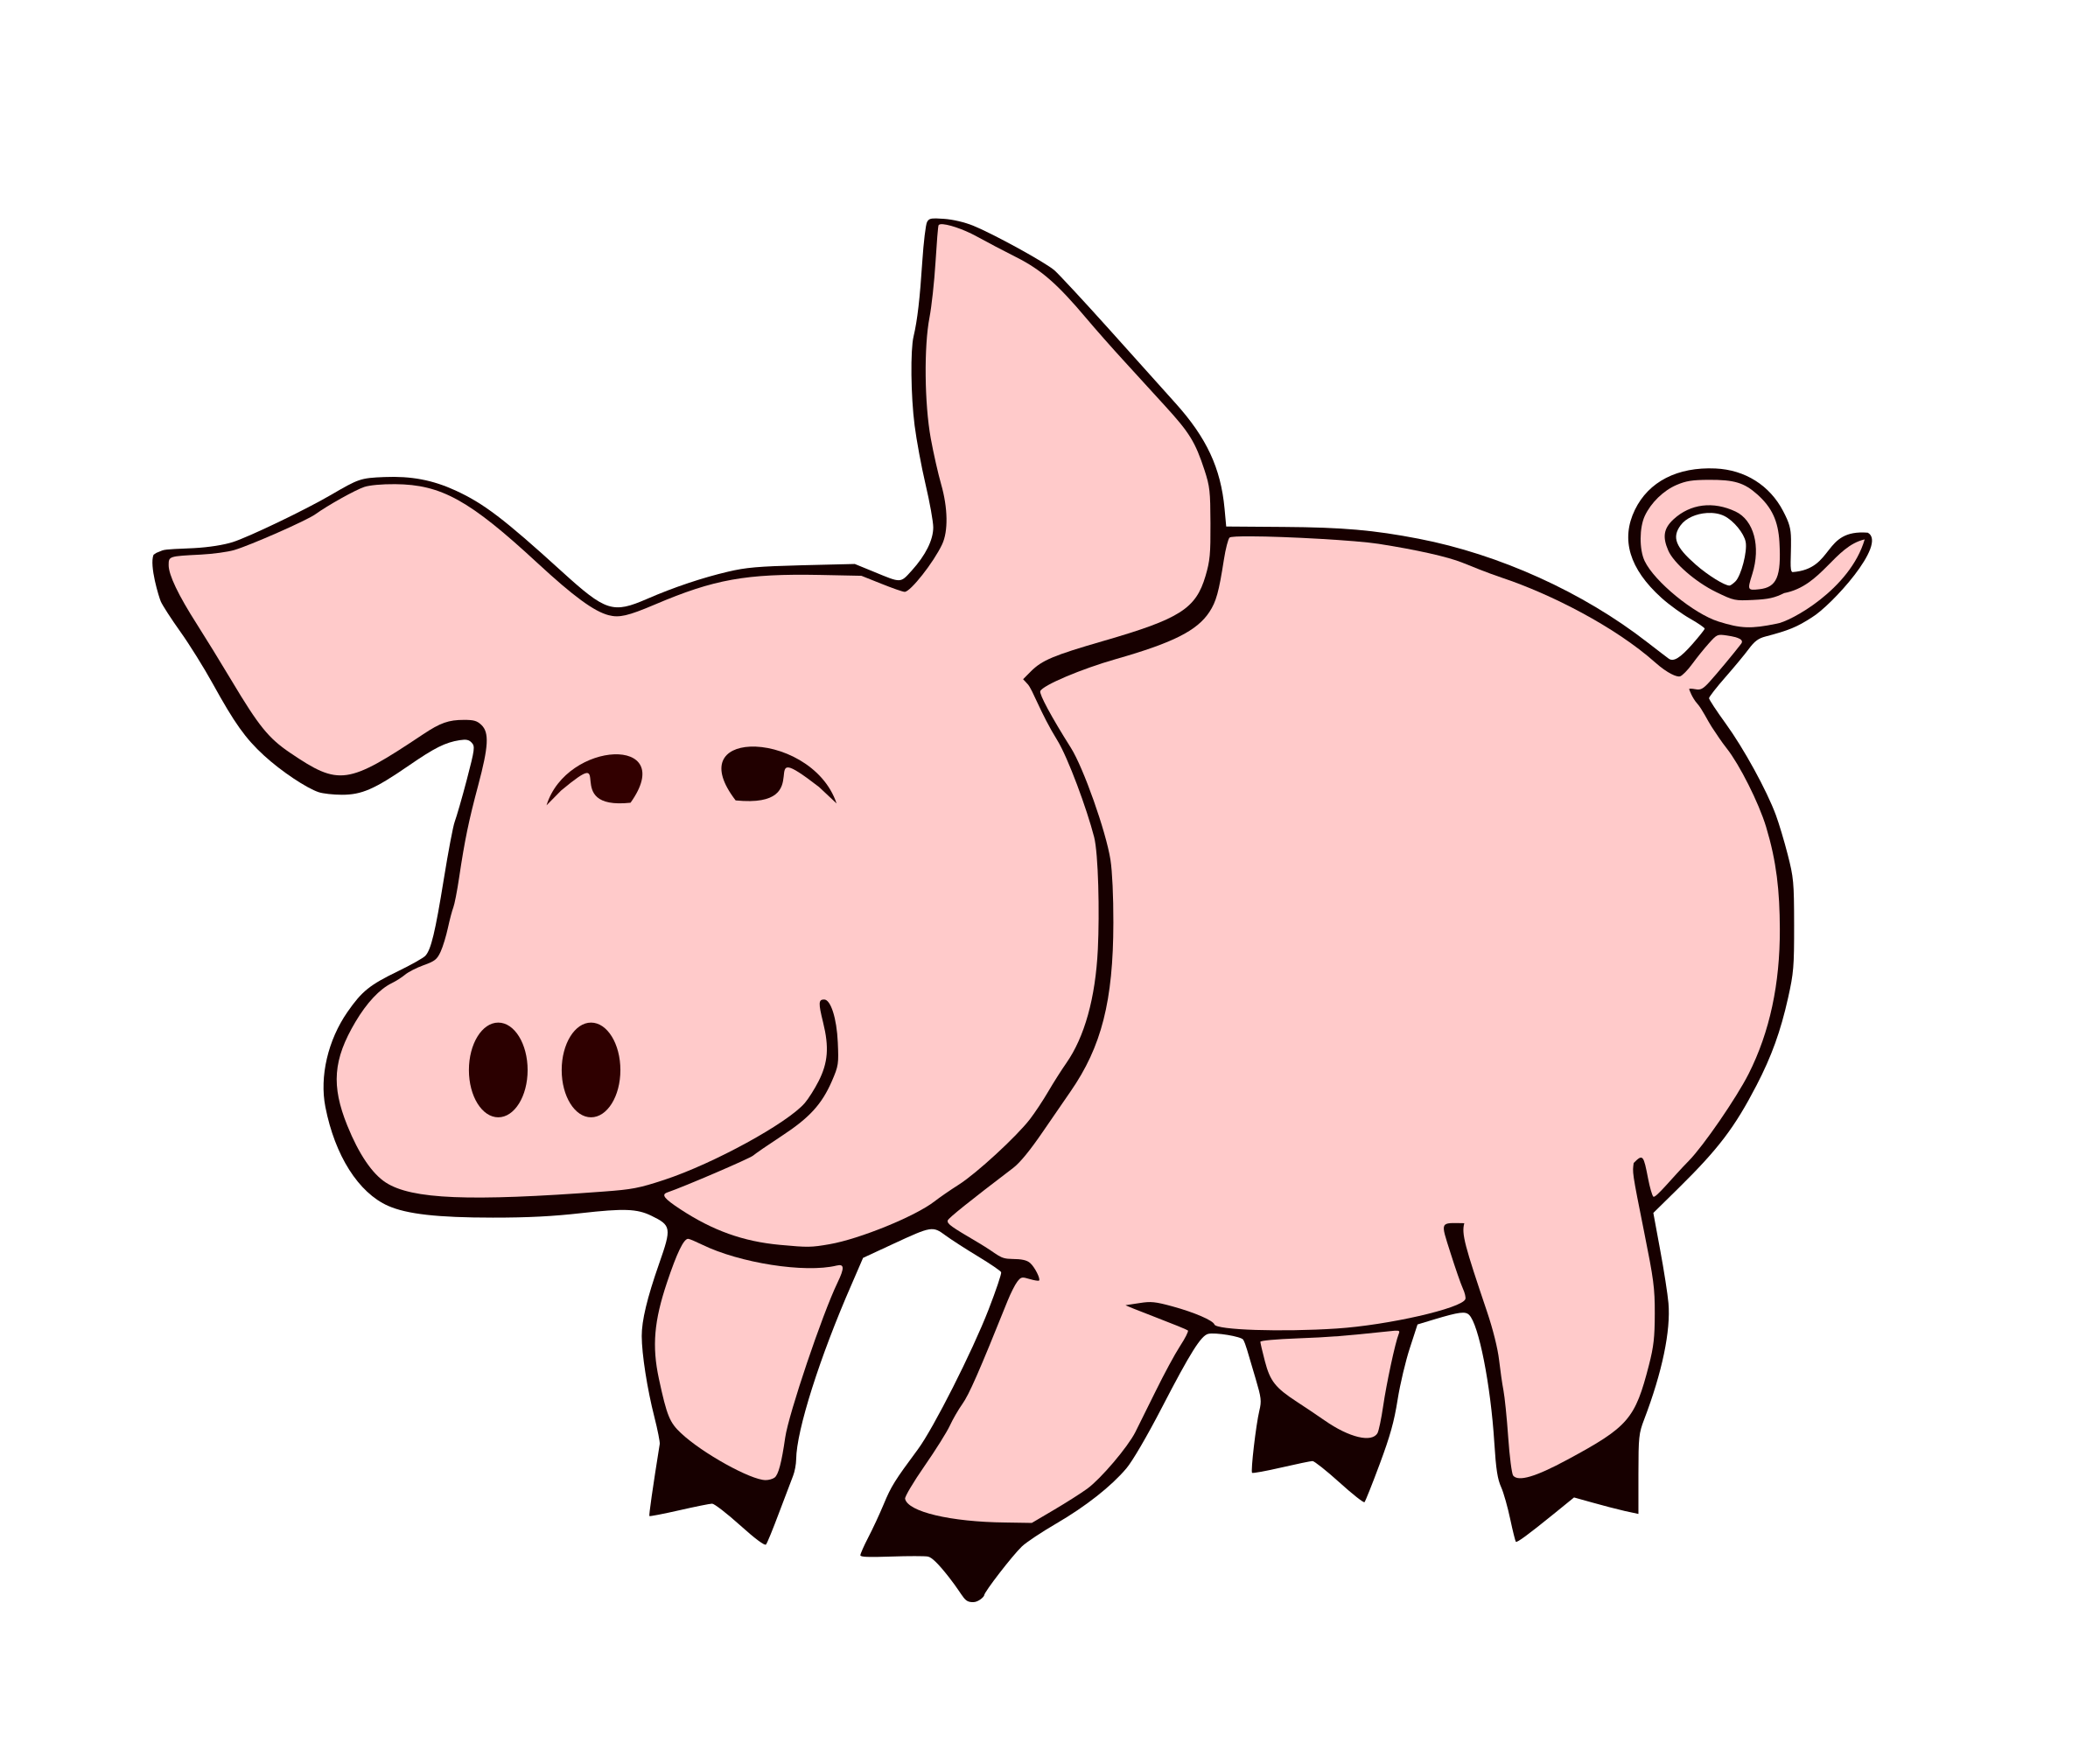 Pig clipart swine. Of a cute obese